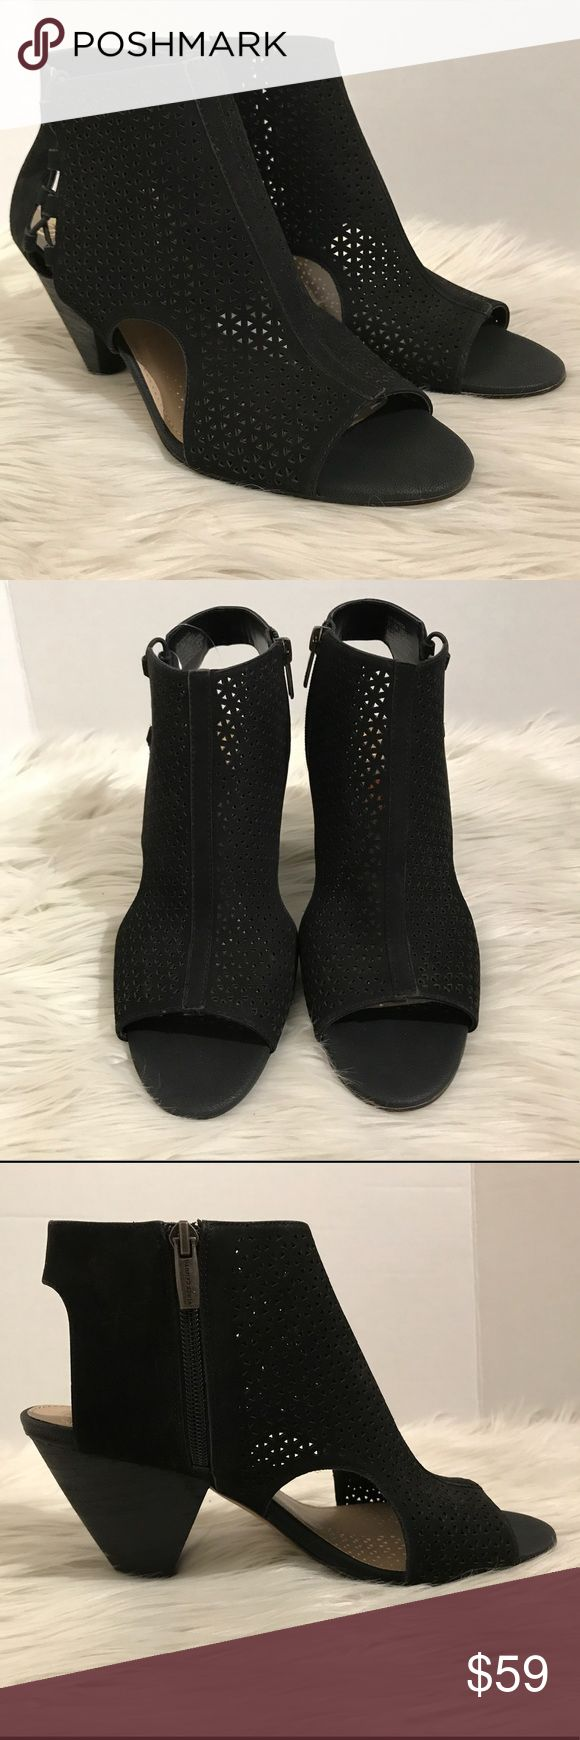 "Vince Camuto Black Enissa Booties 9.5 •       peep toe 	•	cut-out, perforated design detail 	•	cone heel (3.5"") 	•	zip closure 	•	leather upper Vince Camuto Shoes Ankle Boots & Booties"